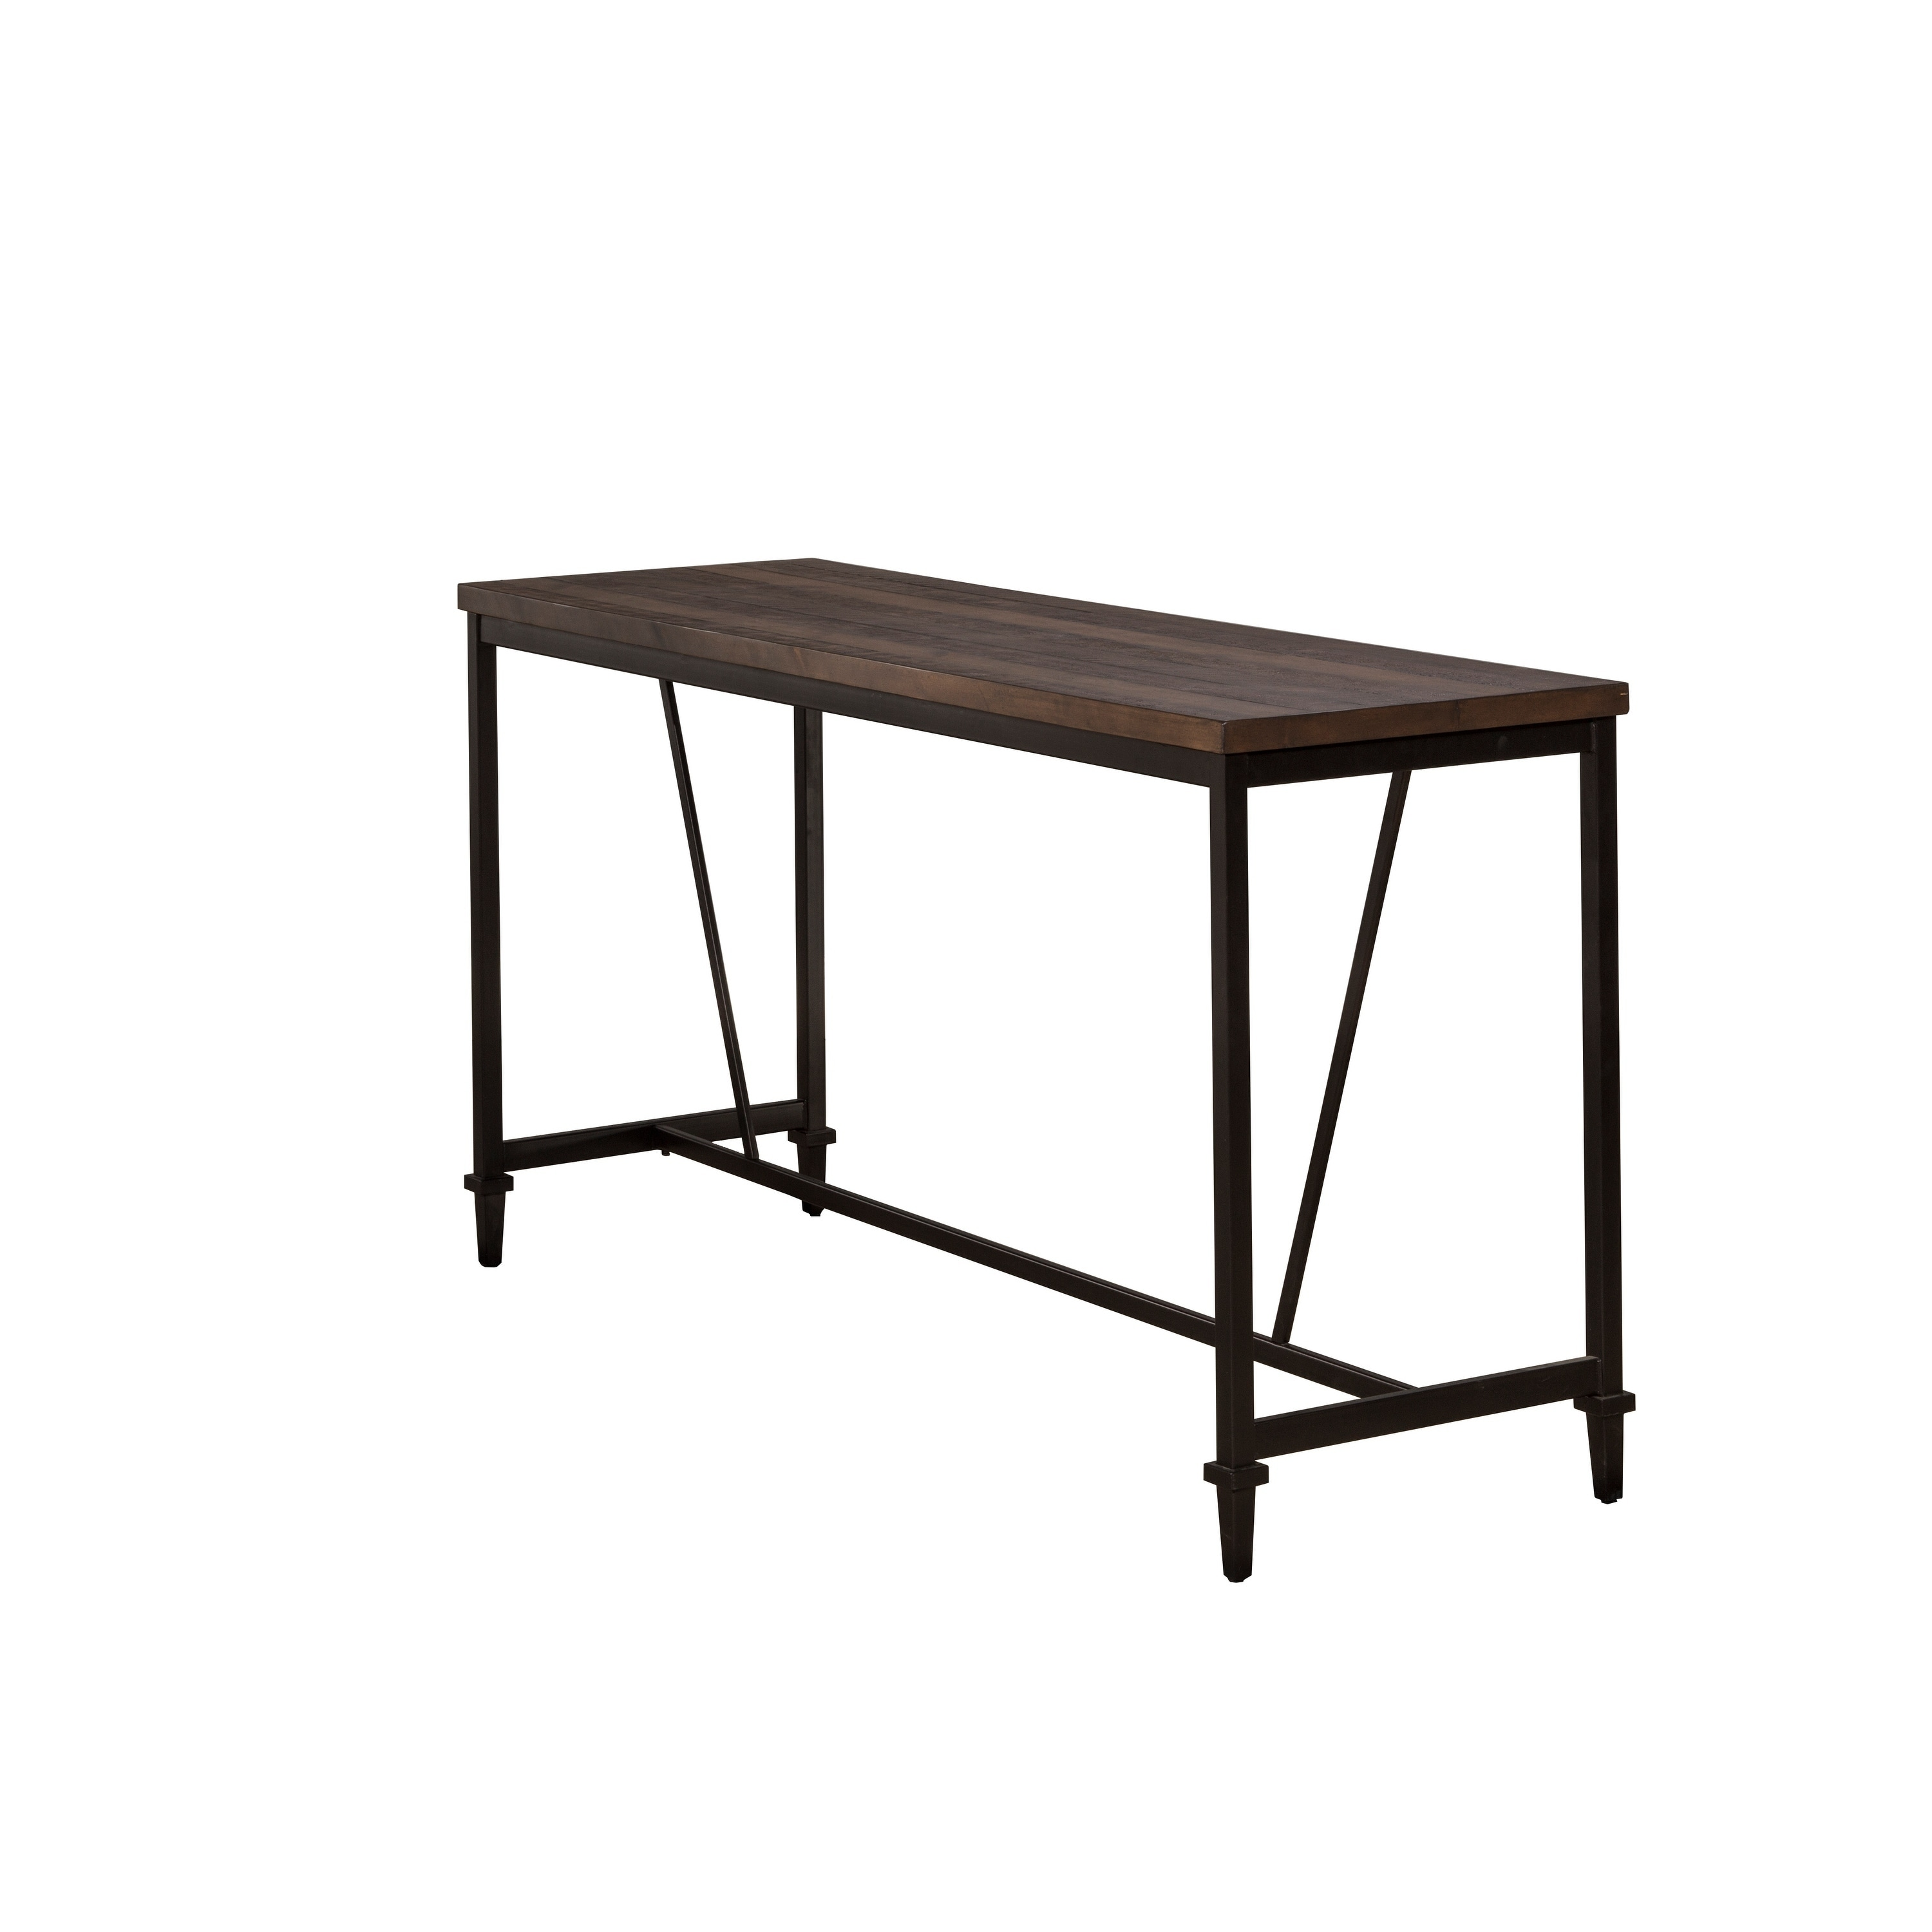 Metal Table Buy Bar Pub Tables Online At Overstock Our Best Dining Room